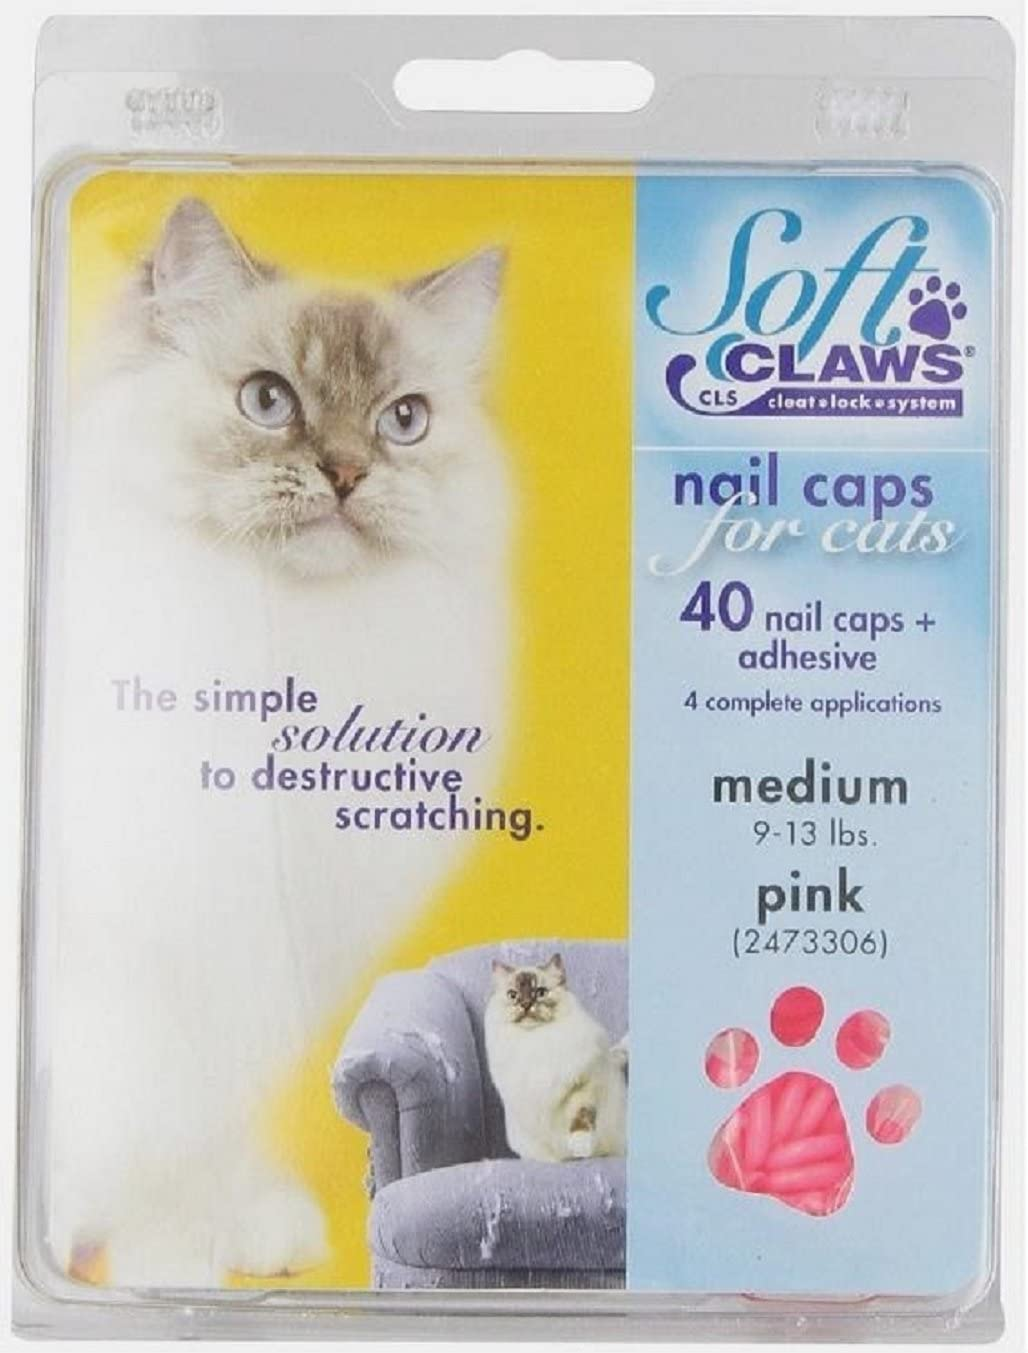 Soft Claws for Cats - CLS (Cleat Lock System), Size Medium, Color Pink by Soft Claws